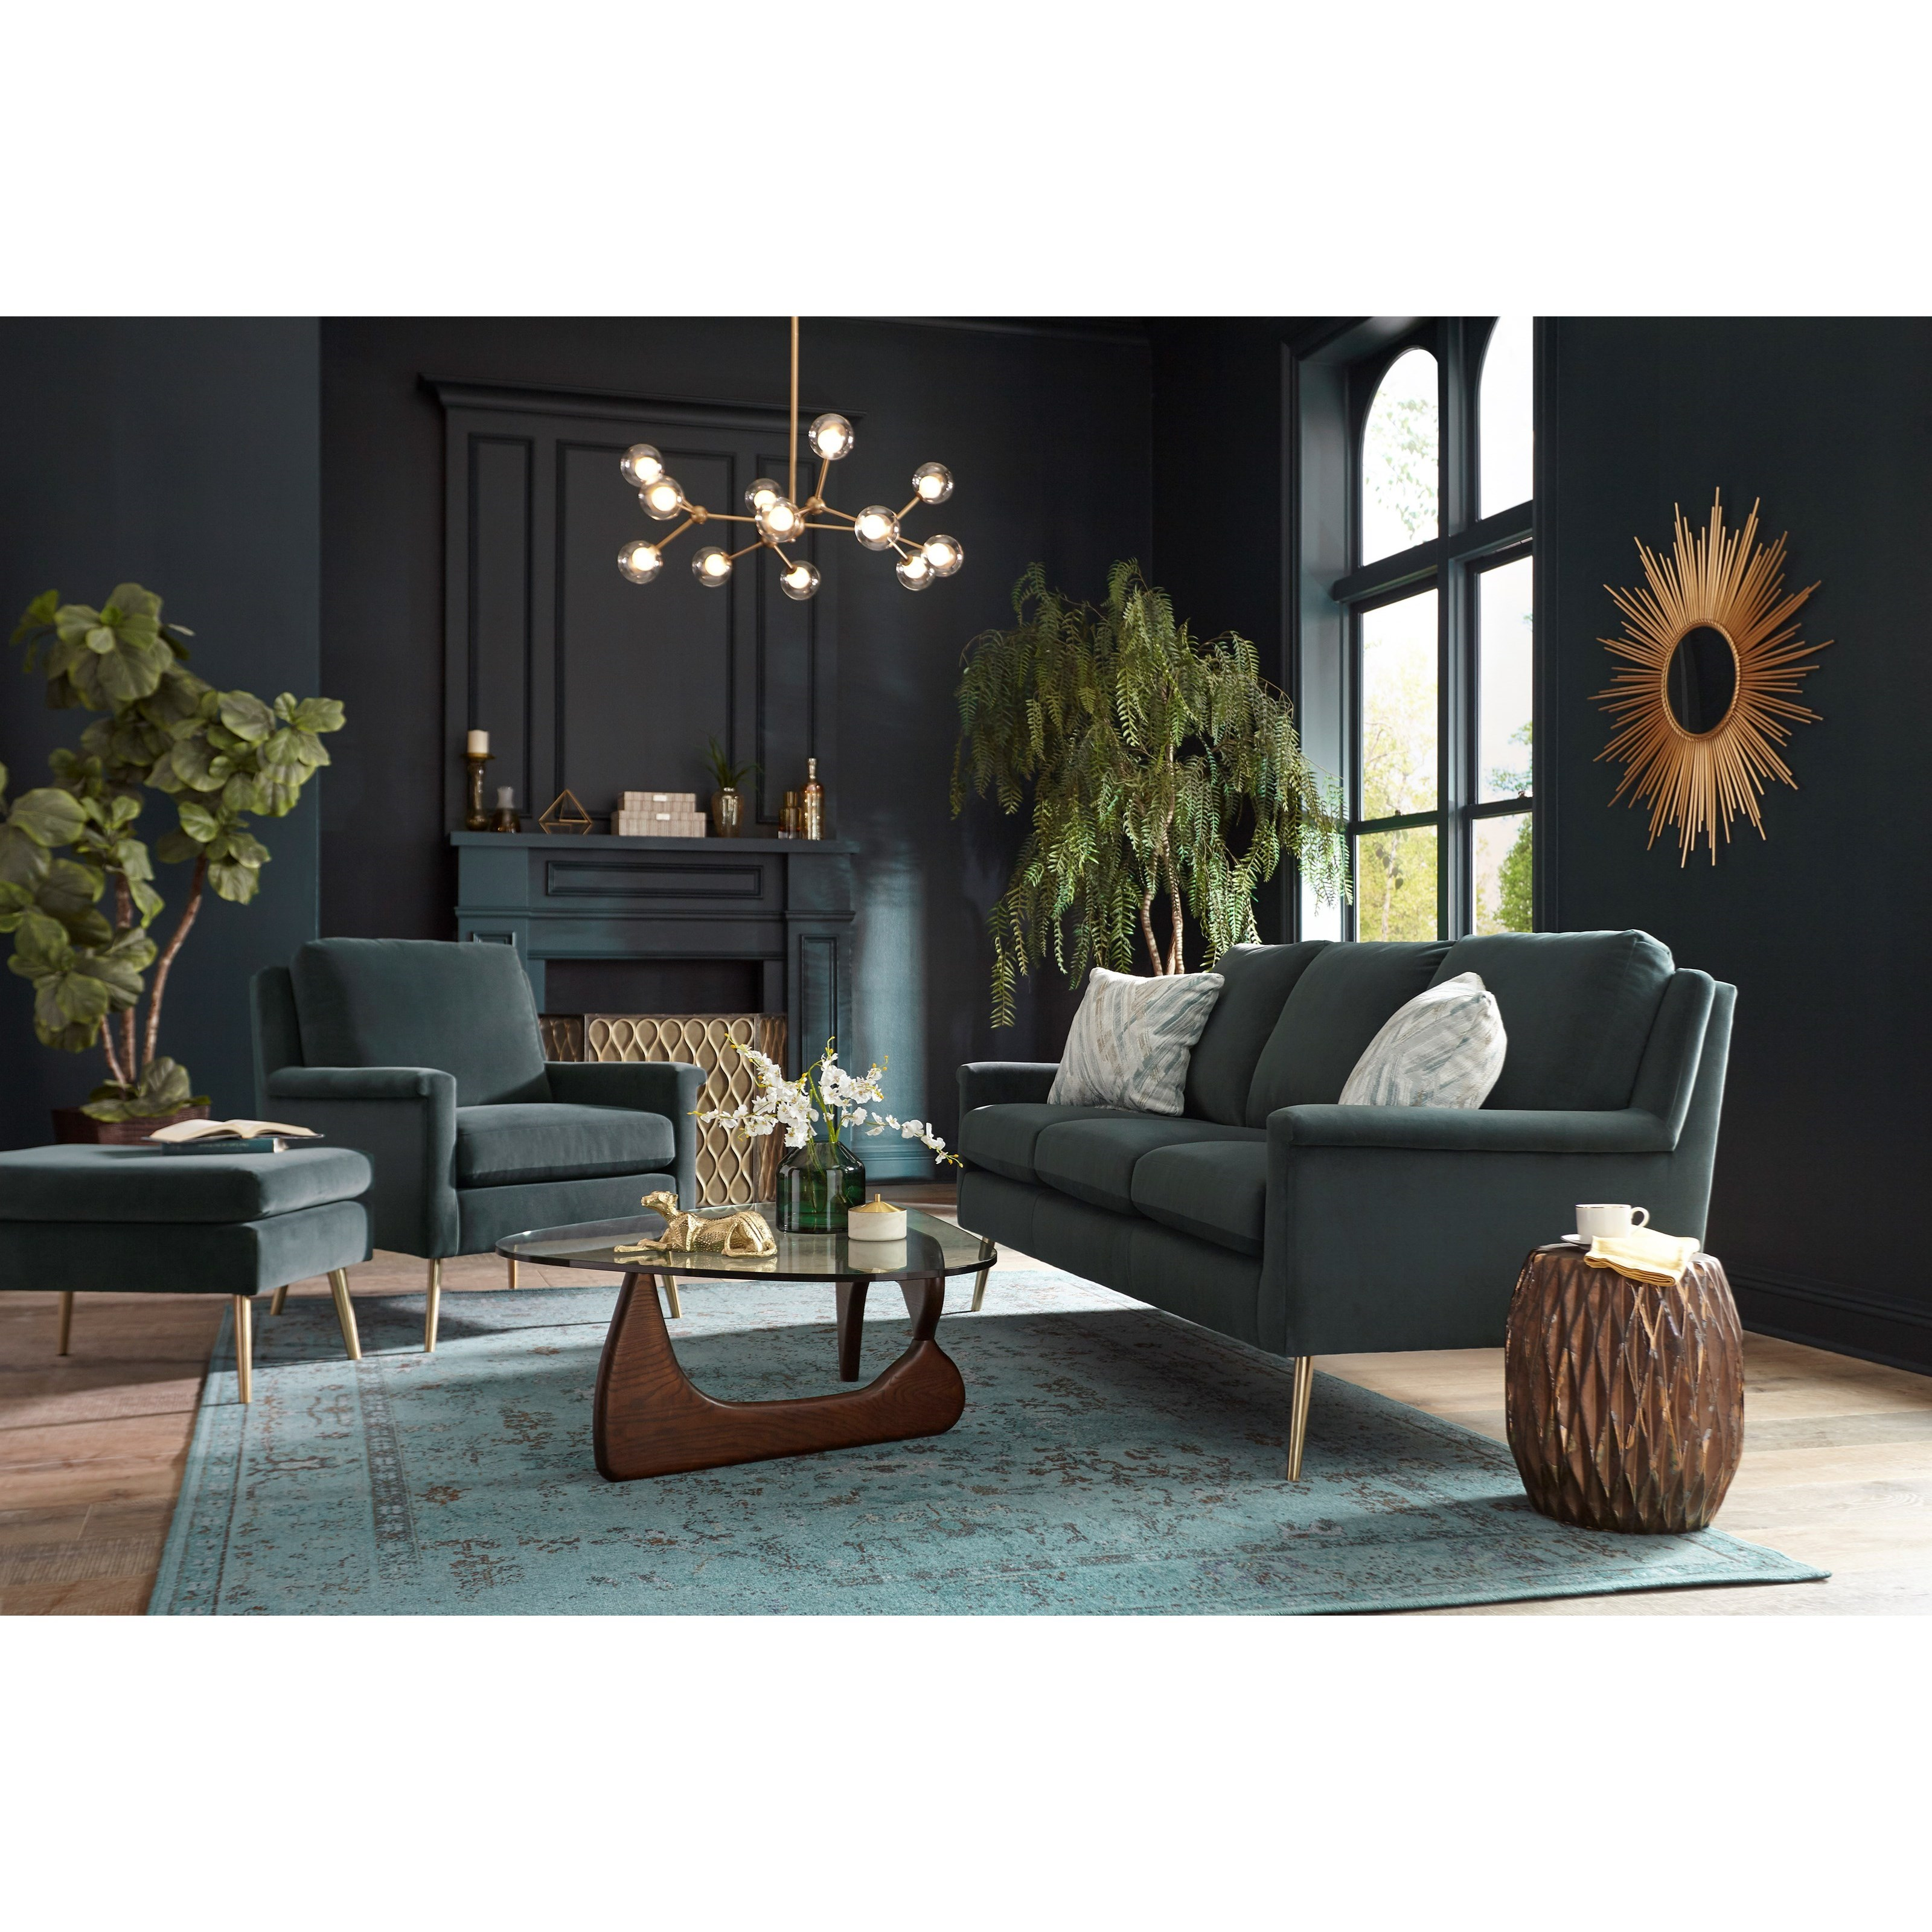 Chambers Living Room Group Best Chambers by Best Home Furnishings at Crowley Furniture & Mattress